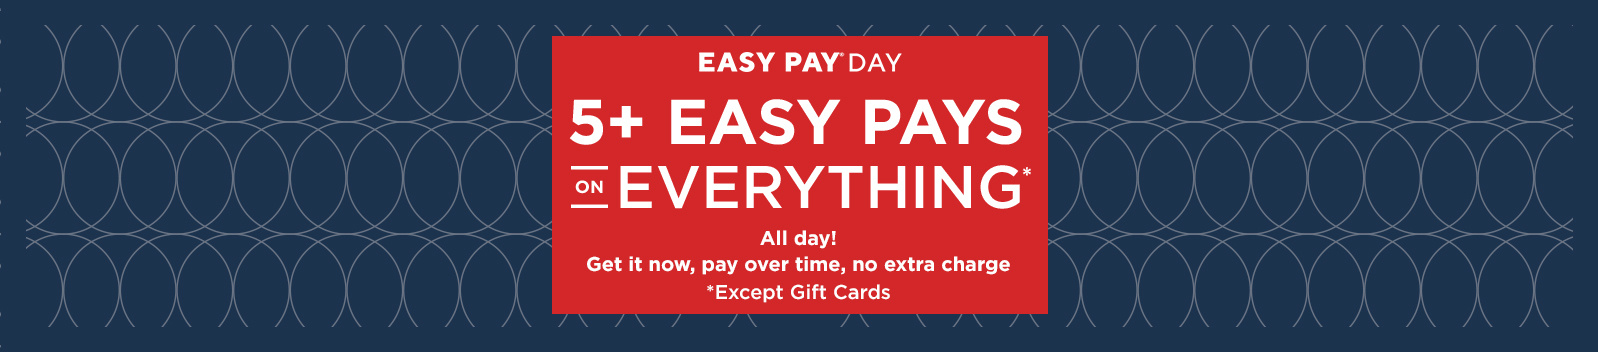 Easy Pay® Day — All day! 5+ Easy Pays on Everything Except Gift Cards — Get it now, pay over time, no extra charge